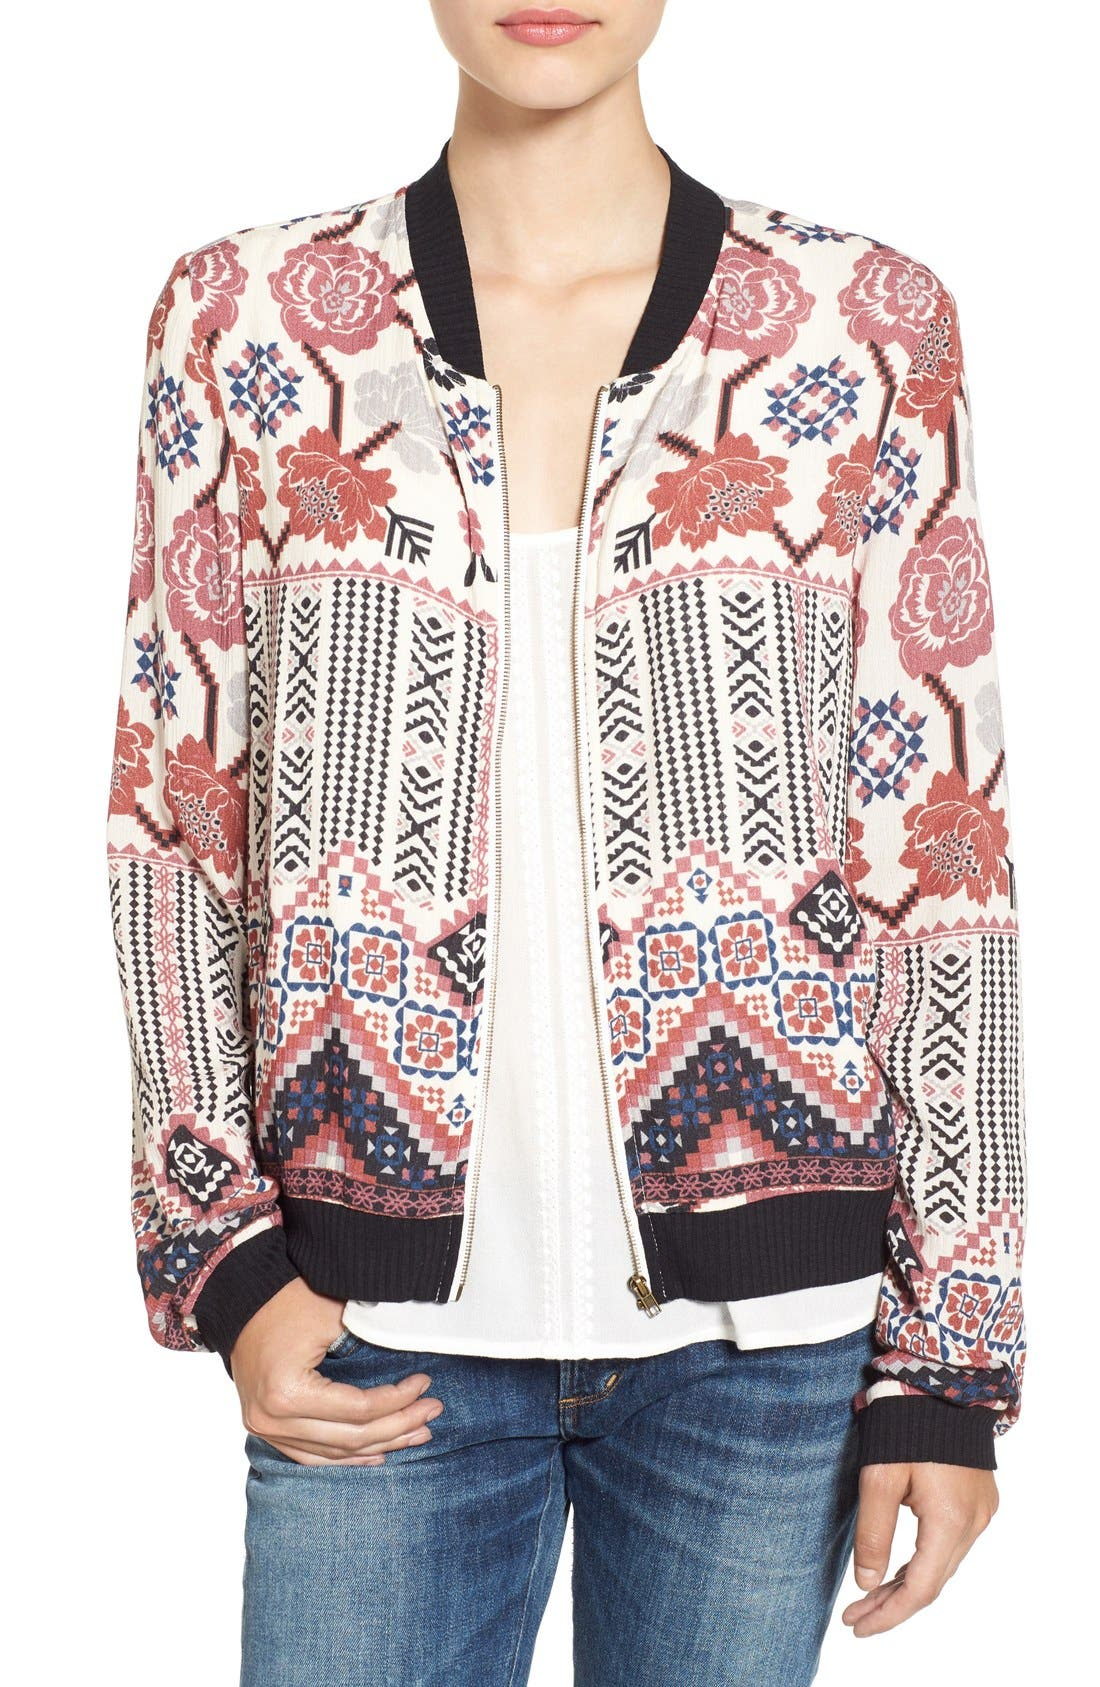 Alternate Image 1 Selected - Chloe & Katie Print Bomber Jacket